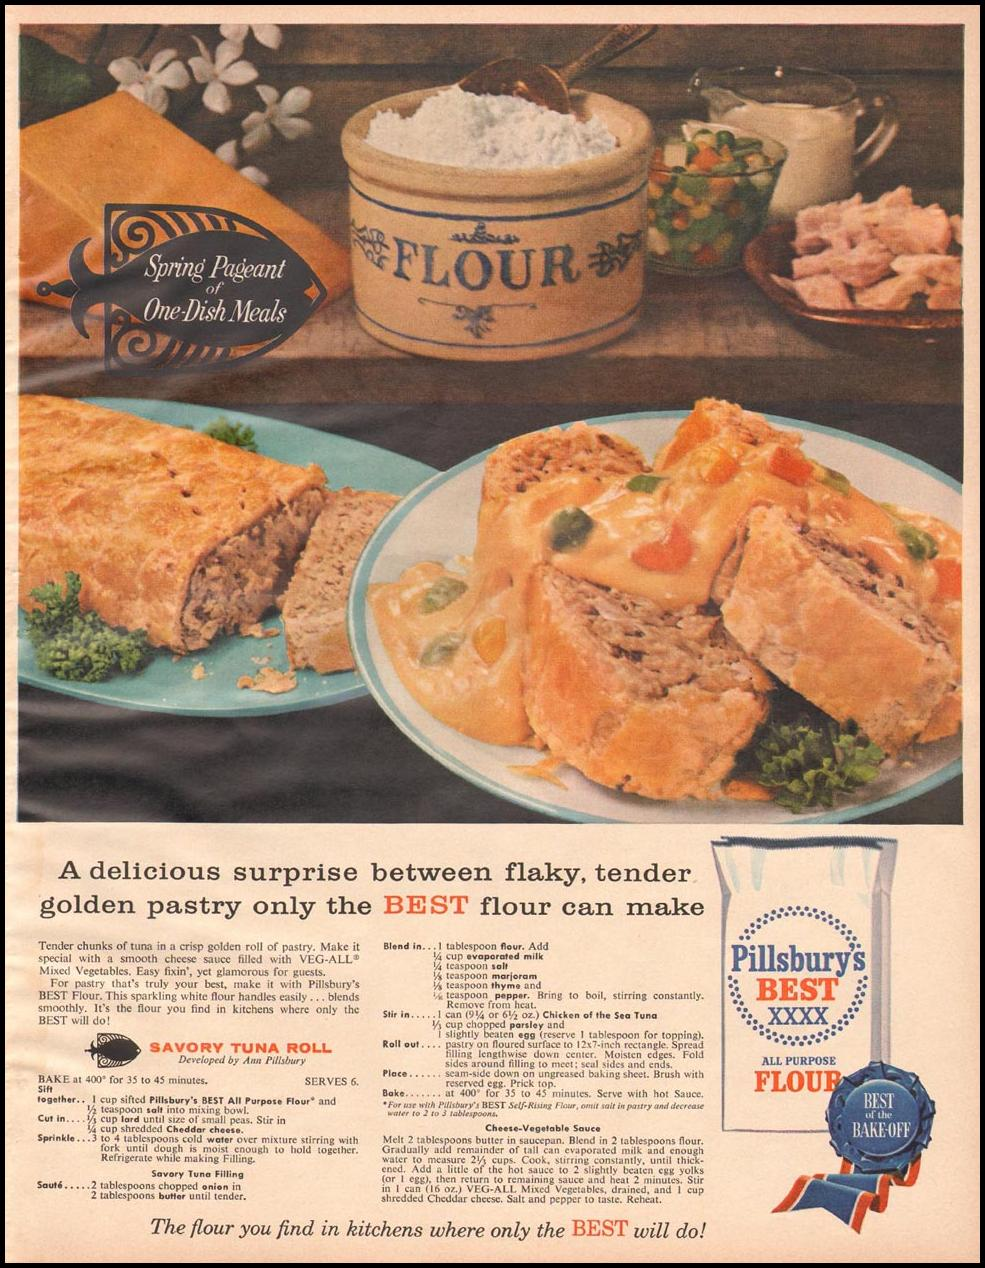 PILLSBURY'S BEST FLOUR BETTER HOMES AND GARDENS 03/01/1960 p. 113